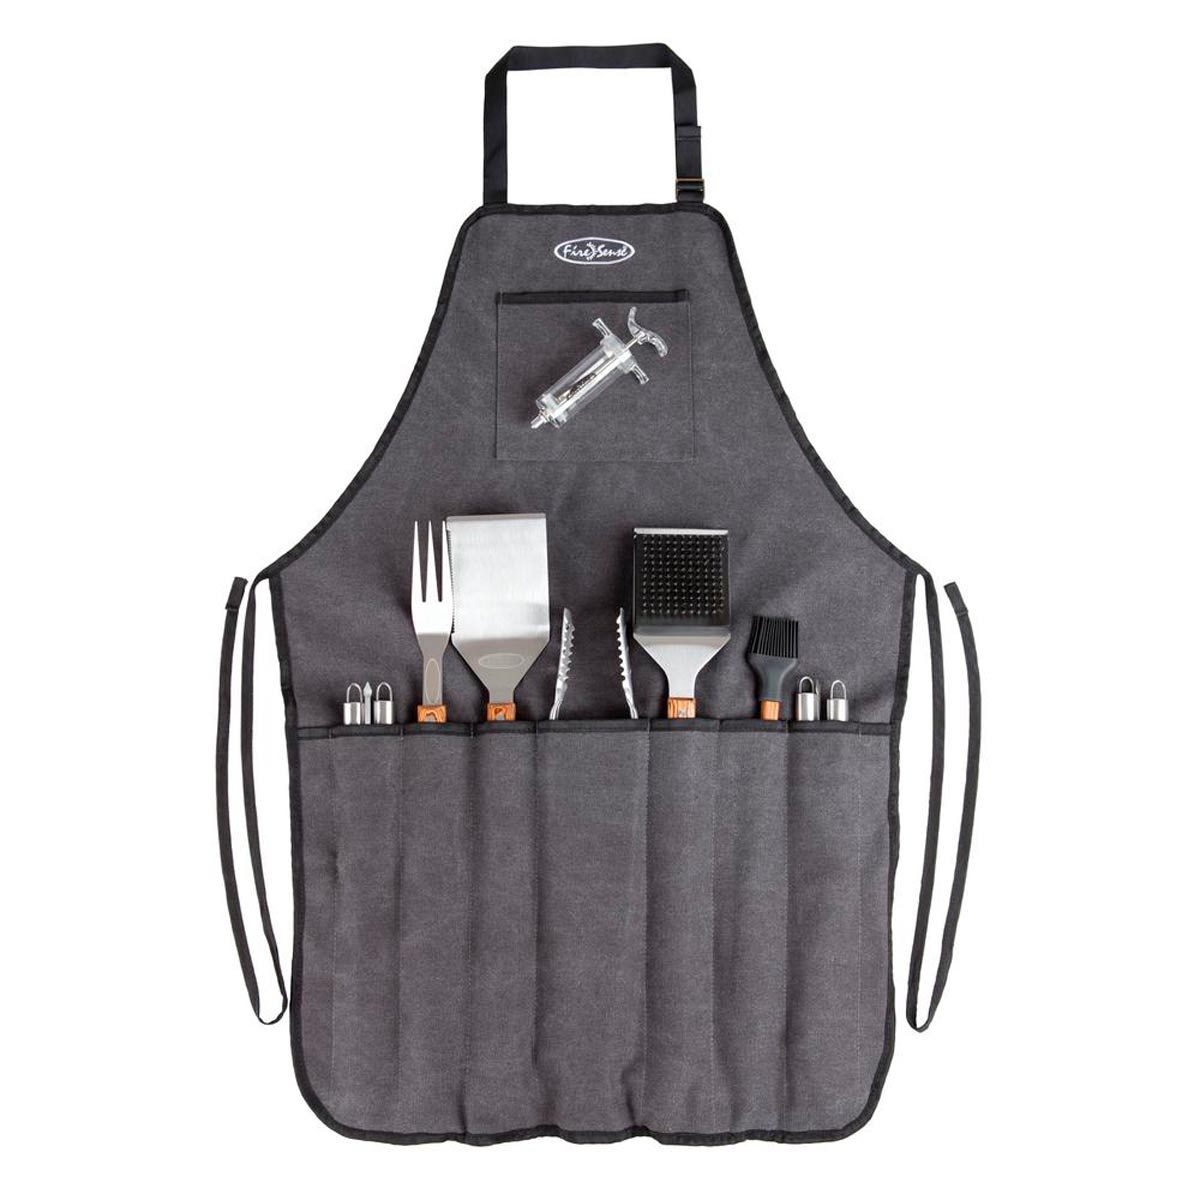 grilling tools and apron